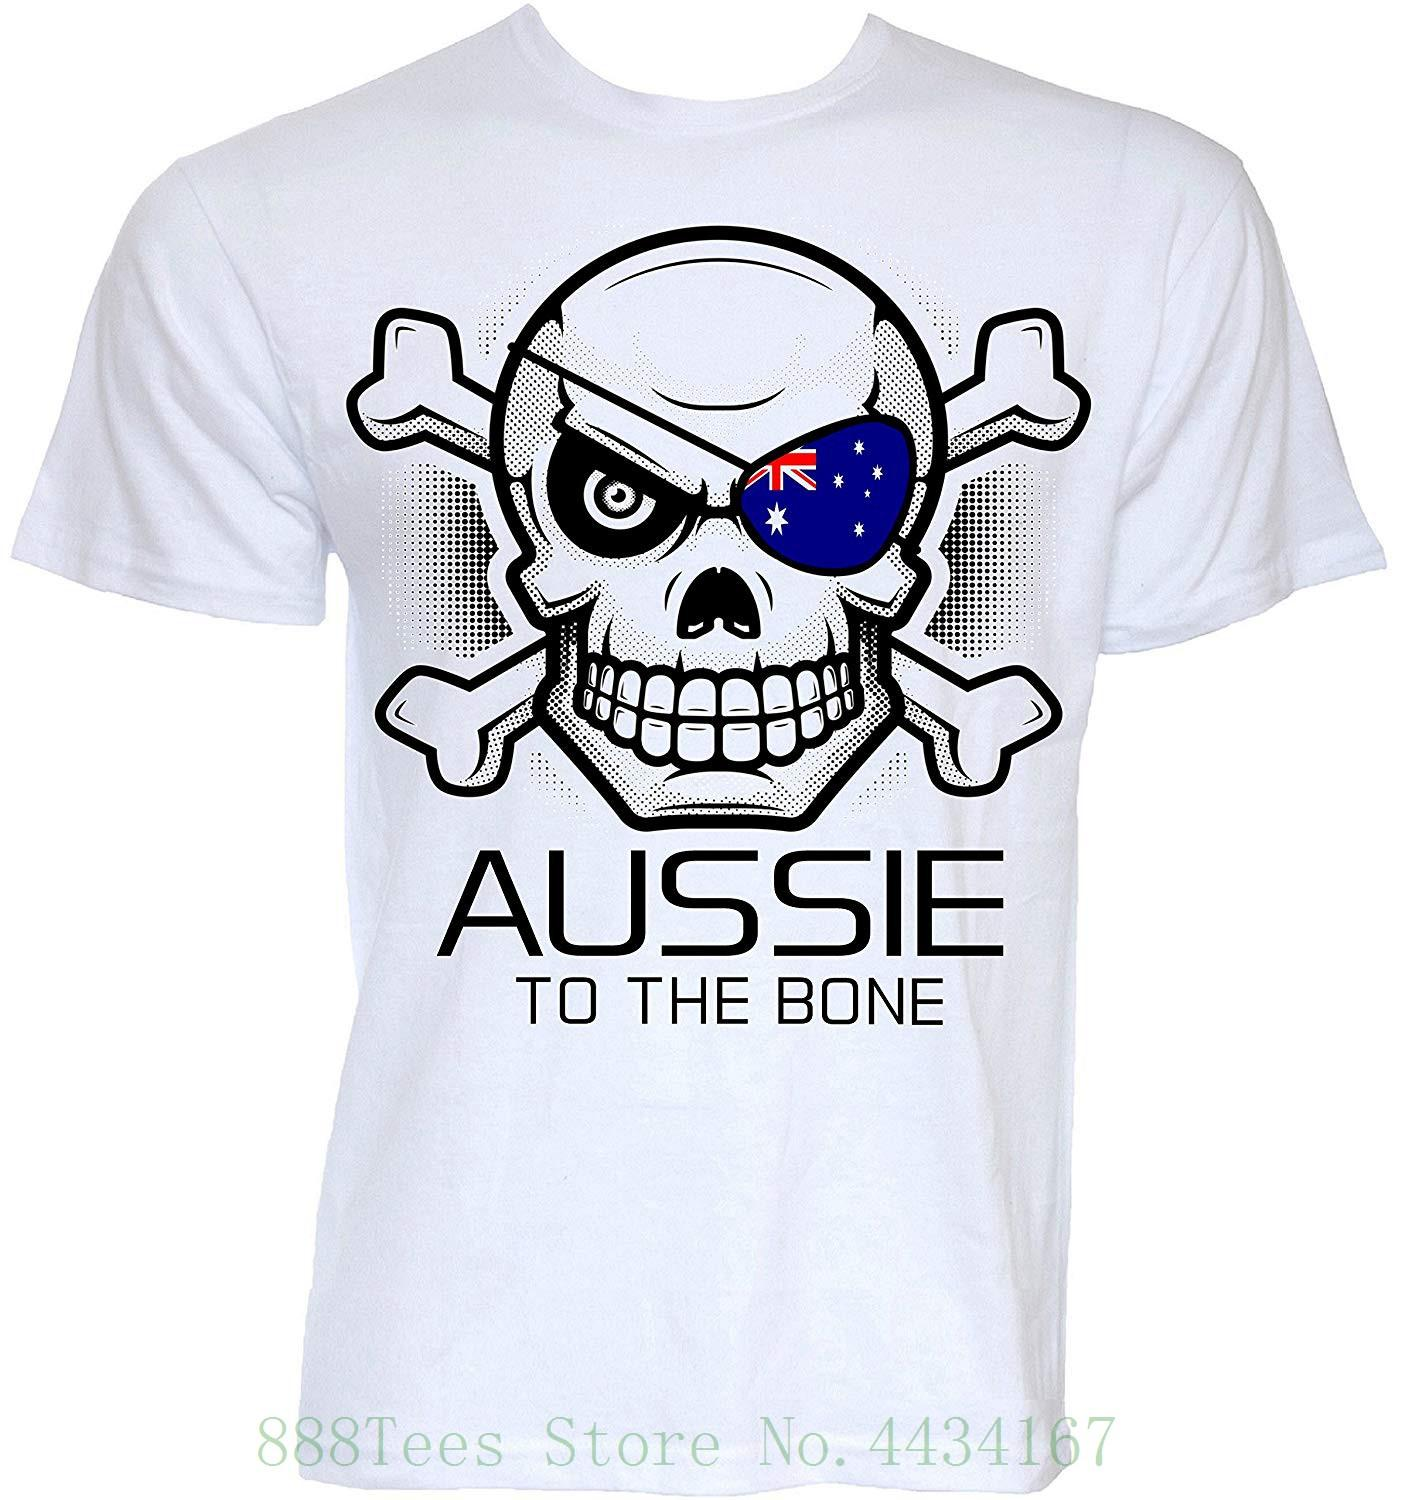 ea2c803d Beat Tees Clothing Mens Funny Novelty Aussie To The Bone Joke Australia  Flag Slogan Gifts T Shirts O Neck Teenage T Shirt Funny Tshirts Long Sleeve  Shirts ...